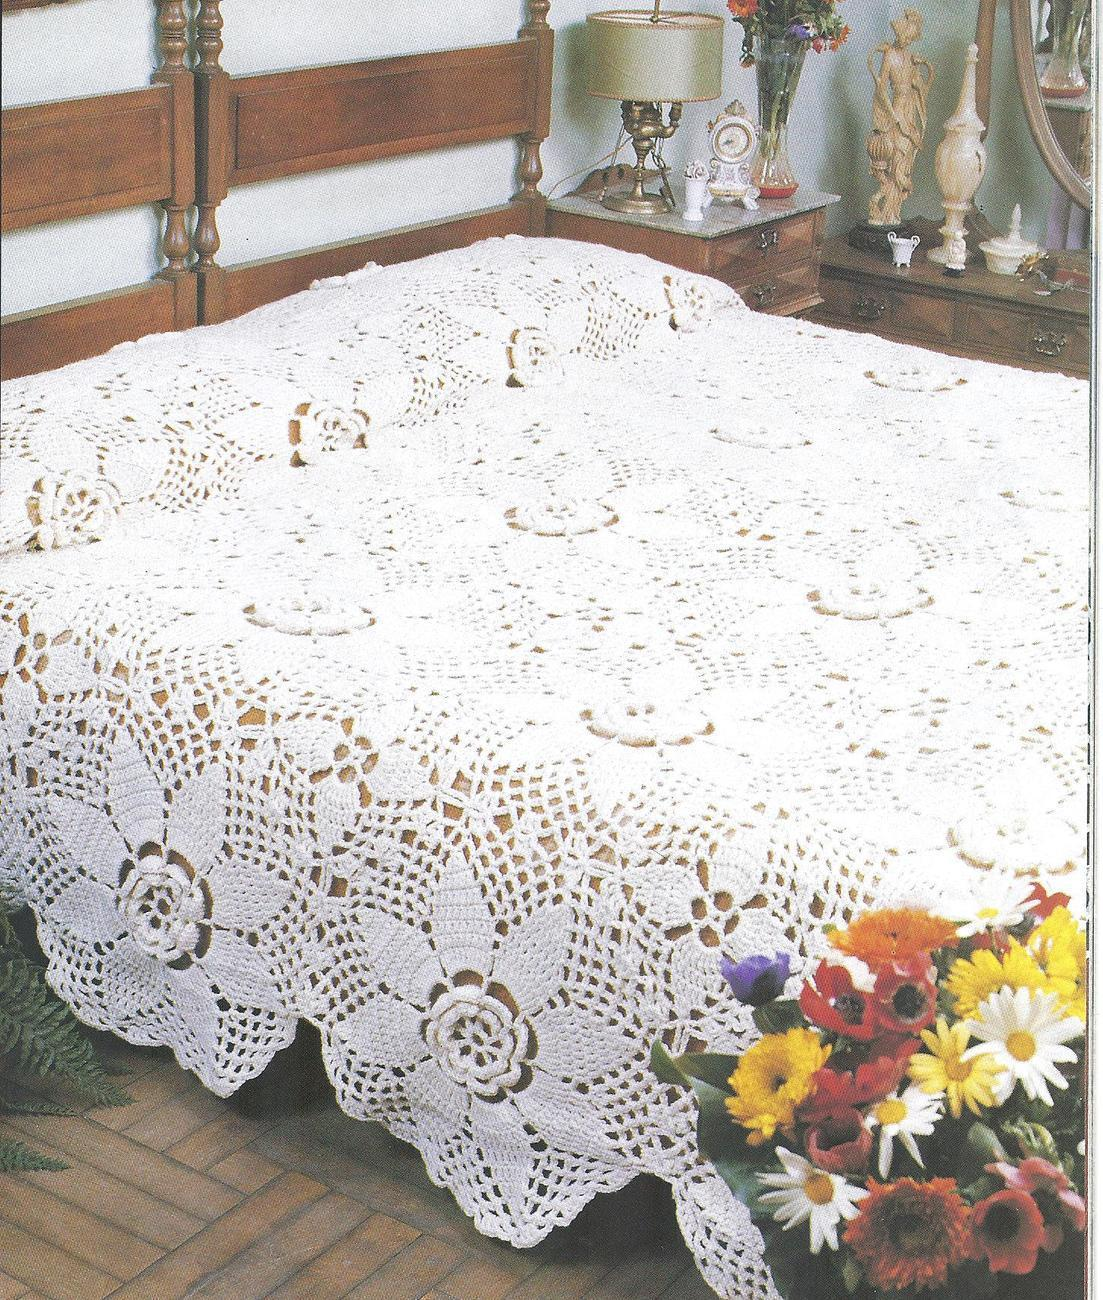 Crochet Stitches Decorative : Decorative_crochet_032